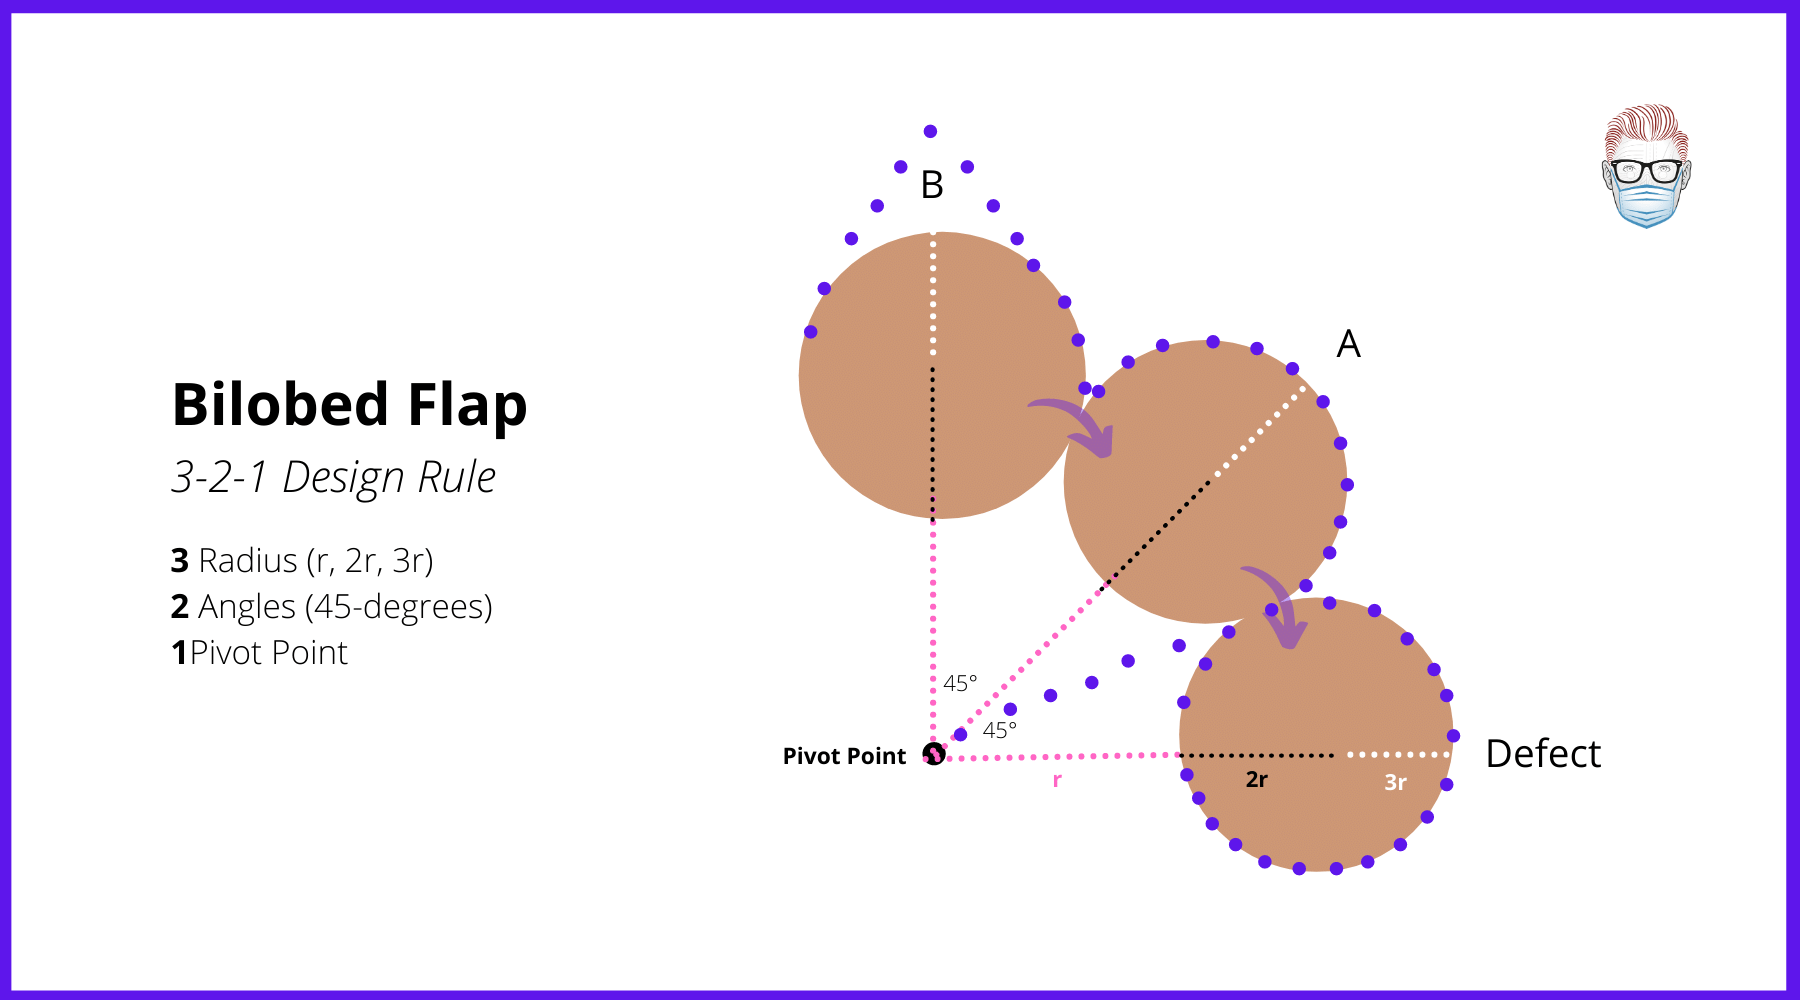 Design and Geometry of a Bilobed Flap around a Pivot Point (Zitelli Modificaton from Esser's flap) for nasal tip defects, pictures, medial canthus